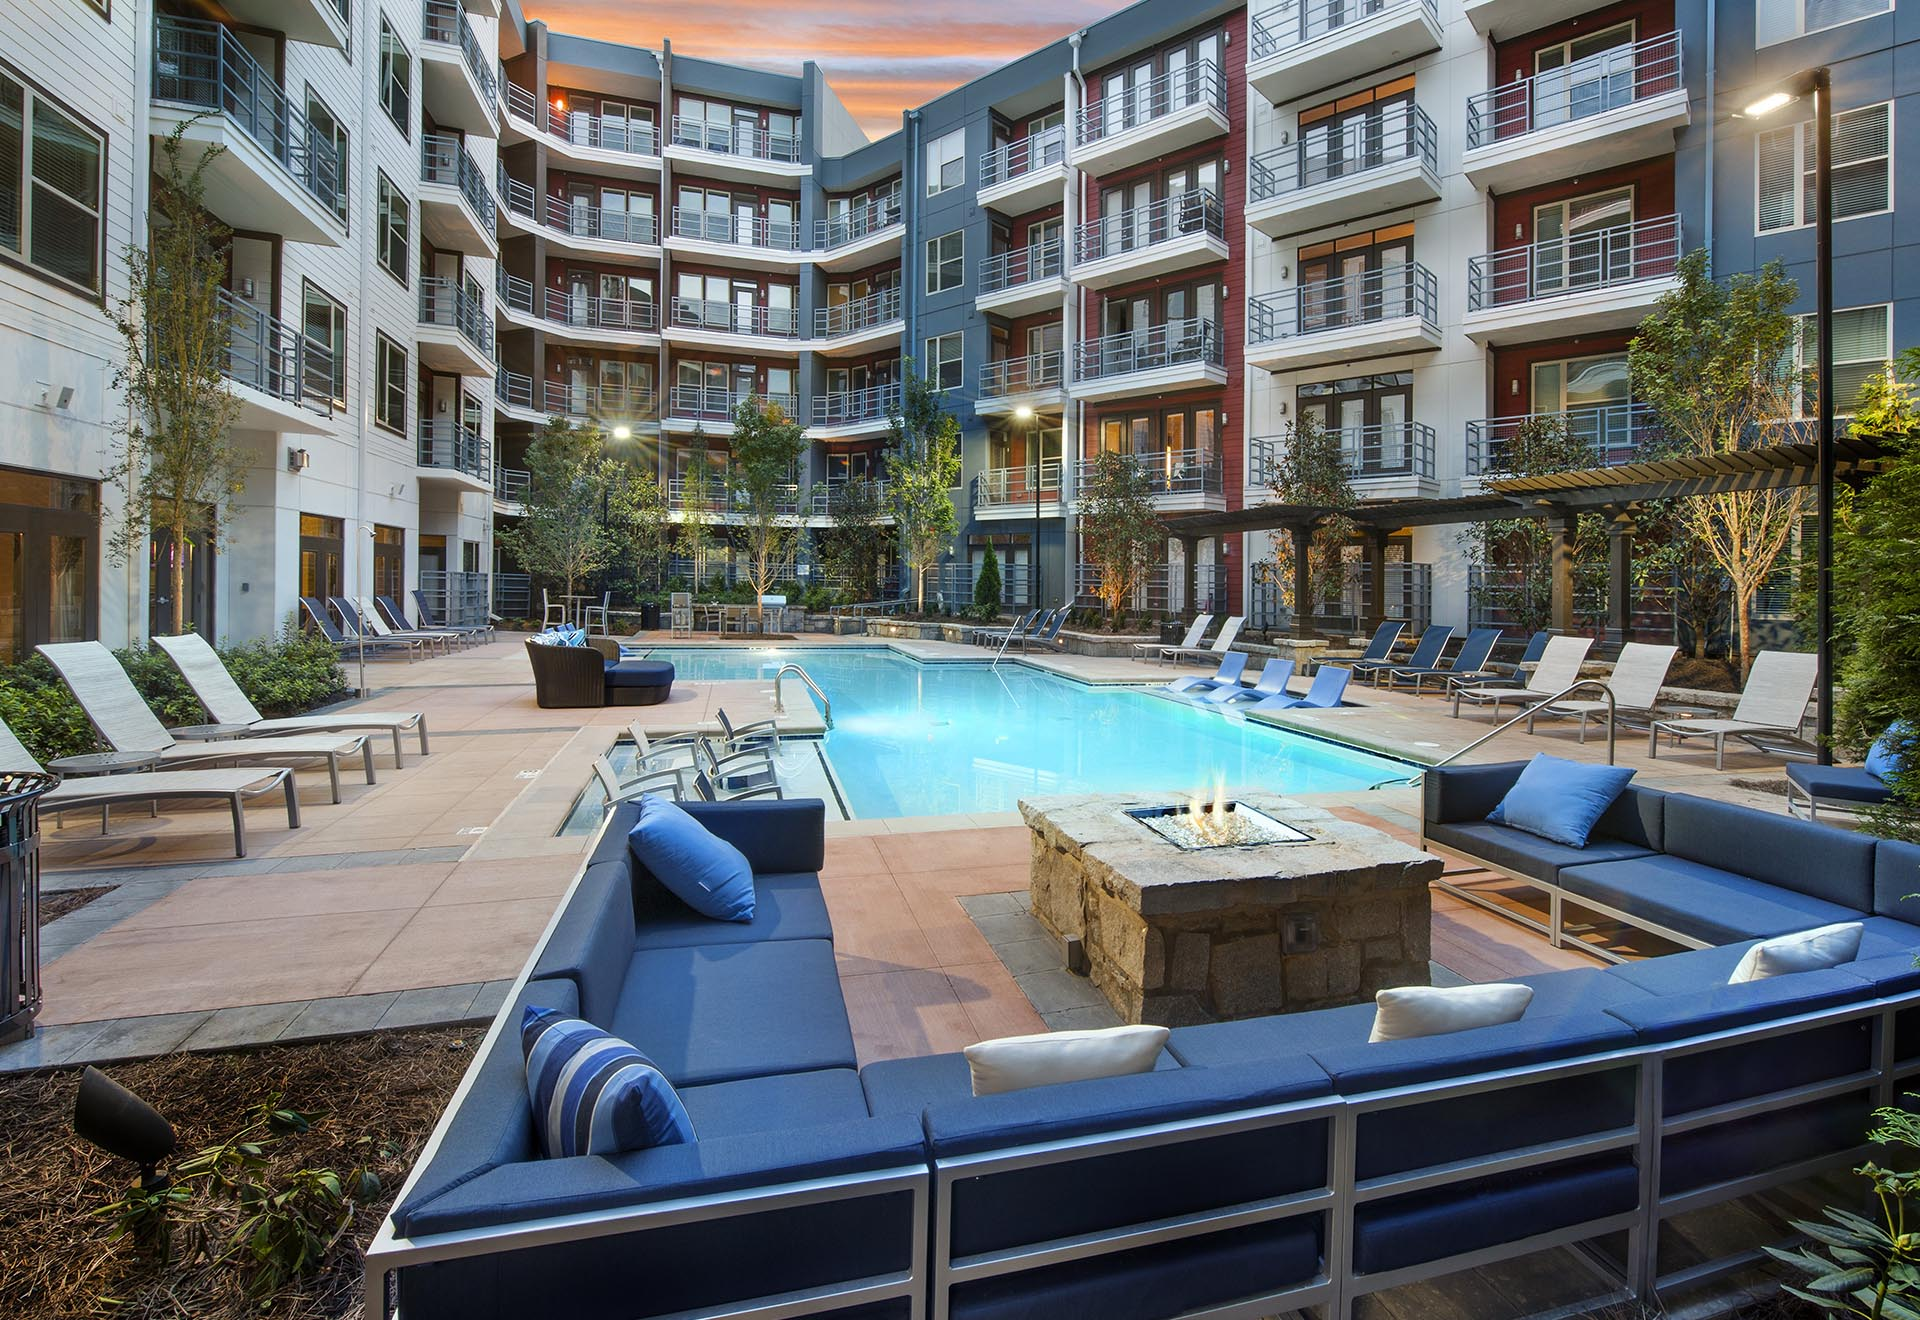 Welcome To Bell GlenridgeBell Glenridge Apartments in Sandy Springs  GA. 2 Bedroom Apartments For Rent In Sandy Springs Ga. Home Design Ideas